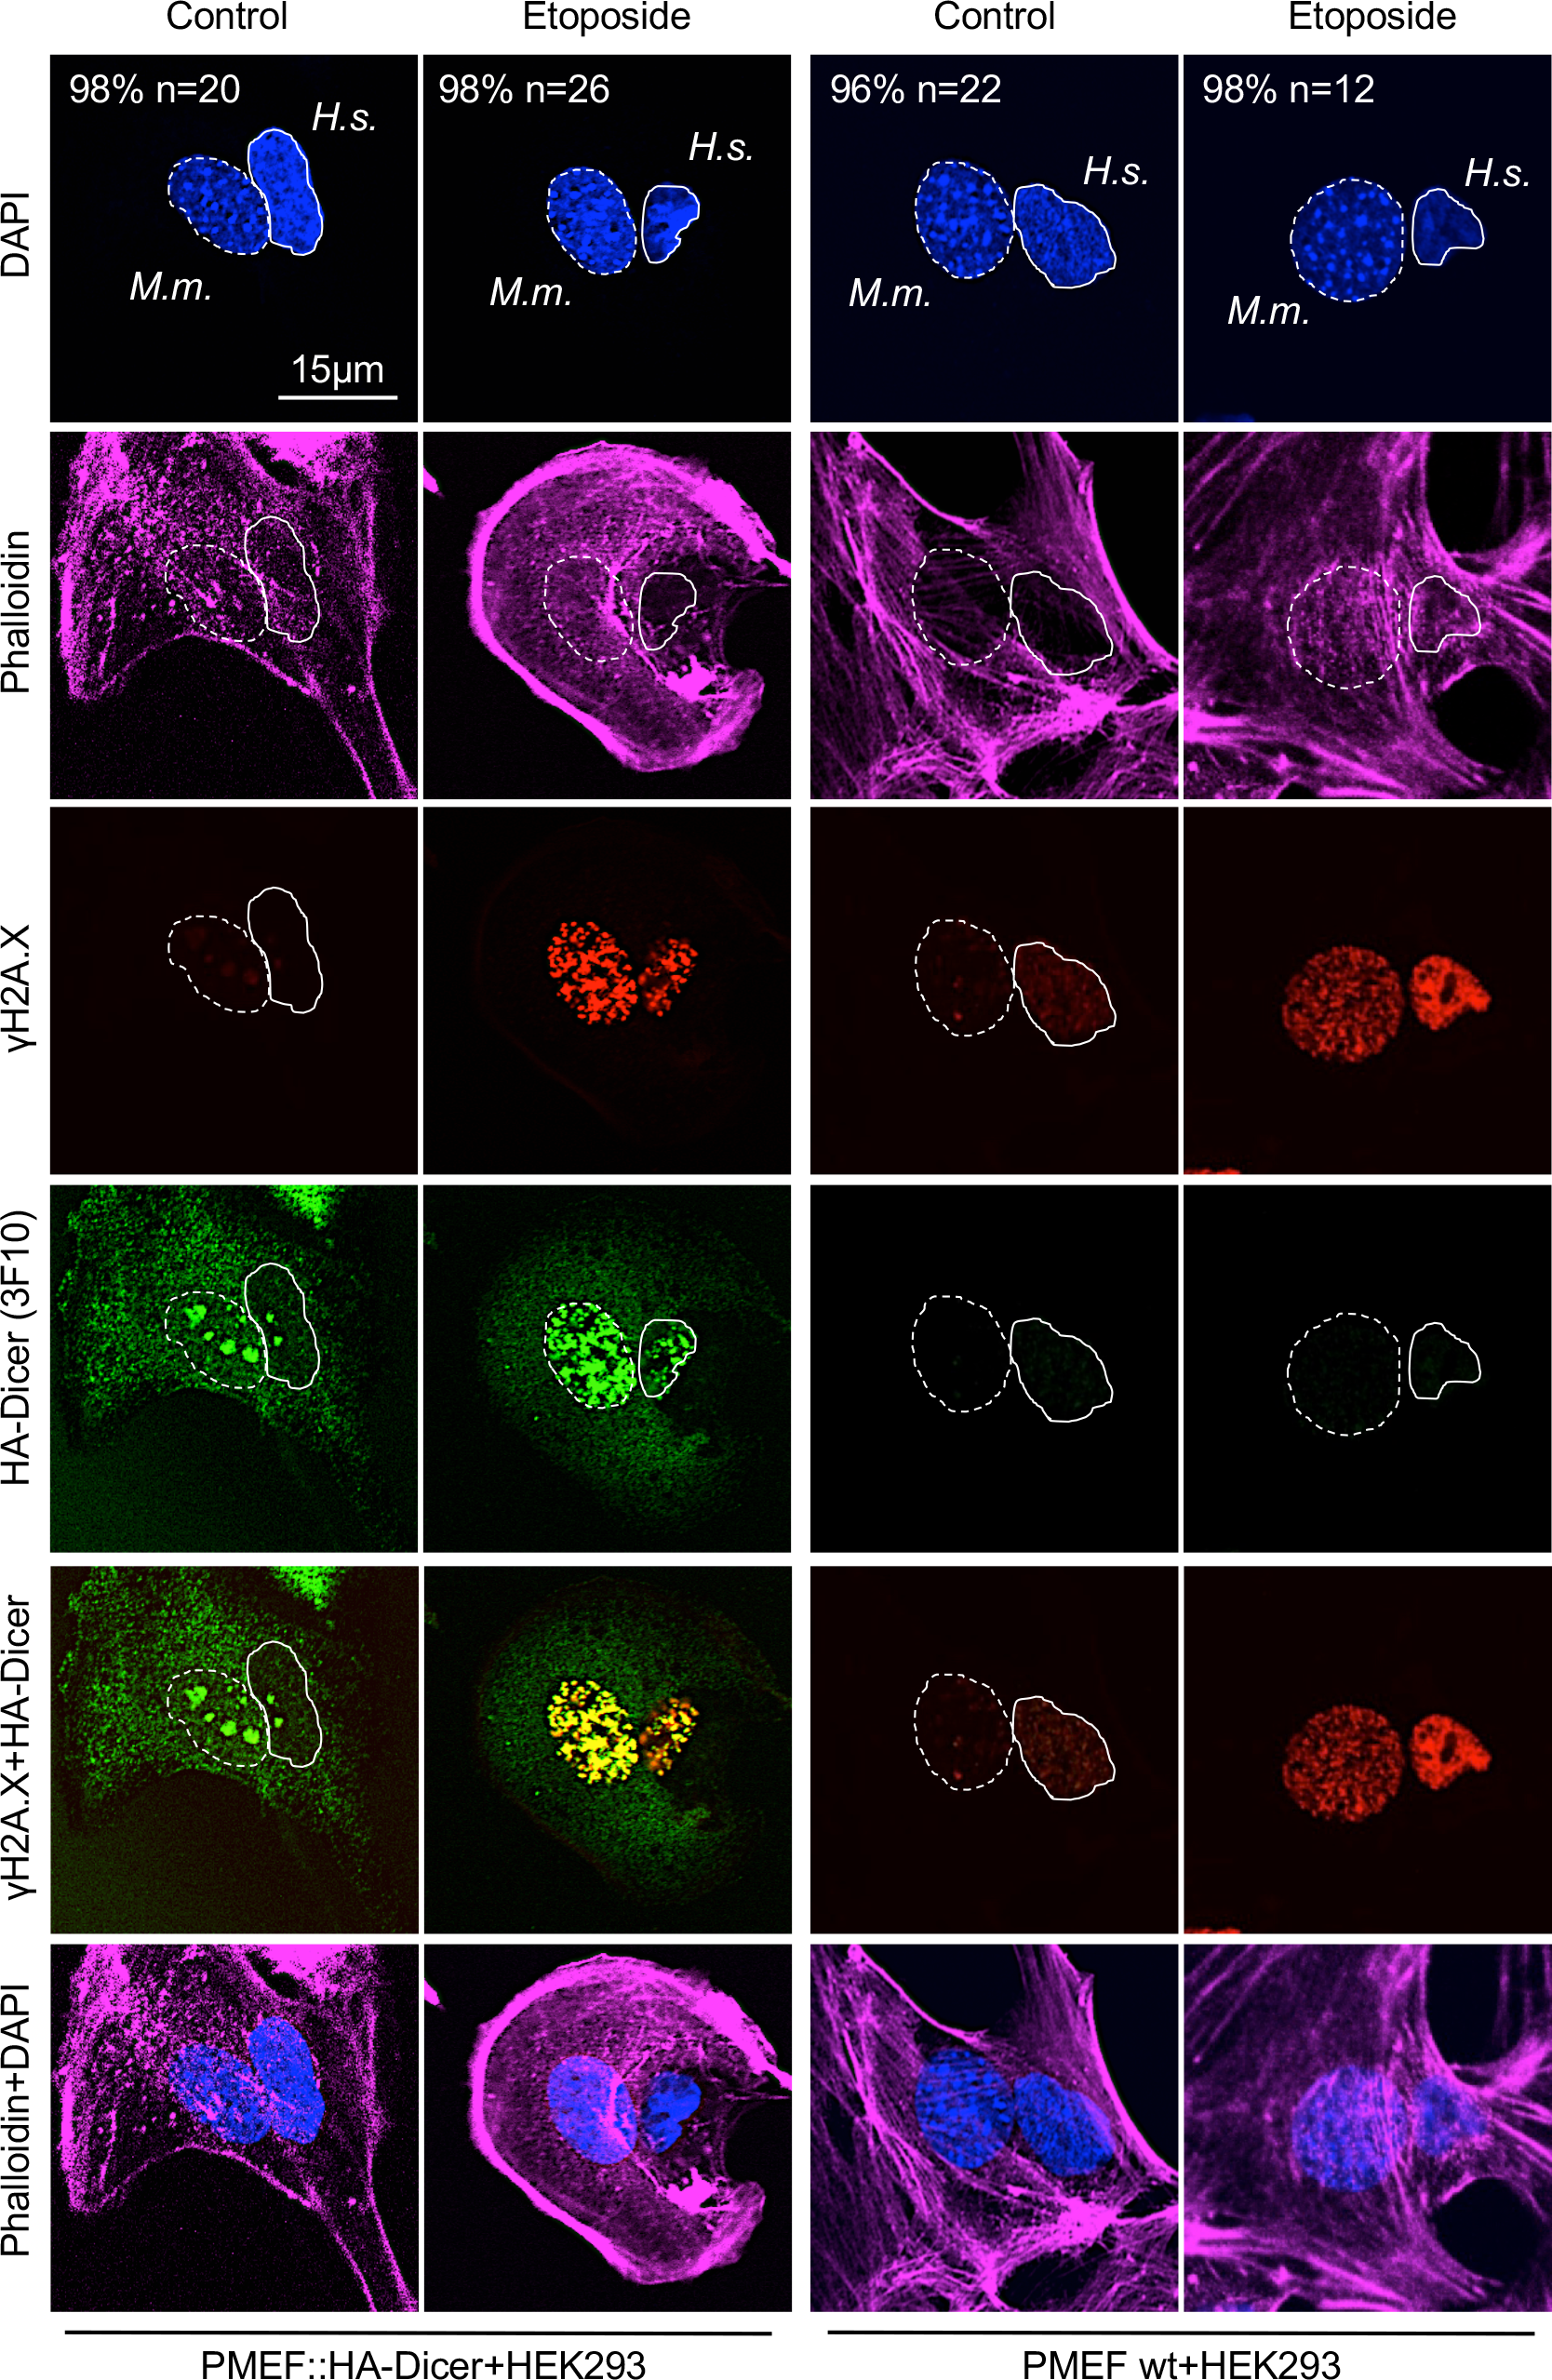 Damage-induced nuclear localisation of murine HA-Dicer in human HEK293 cells.